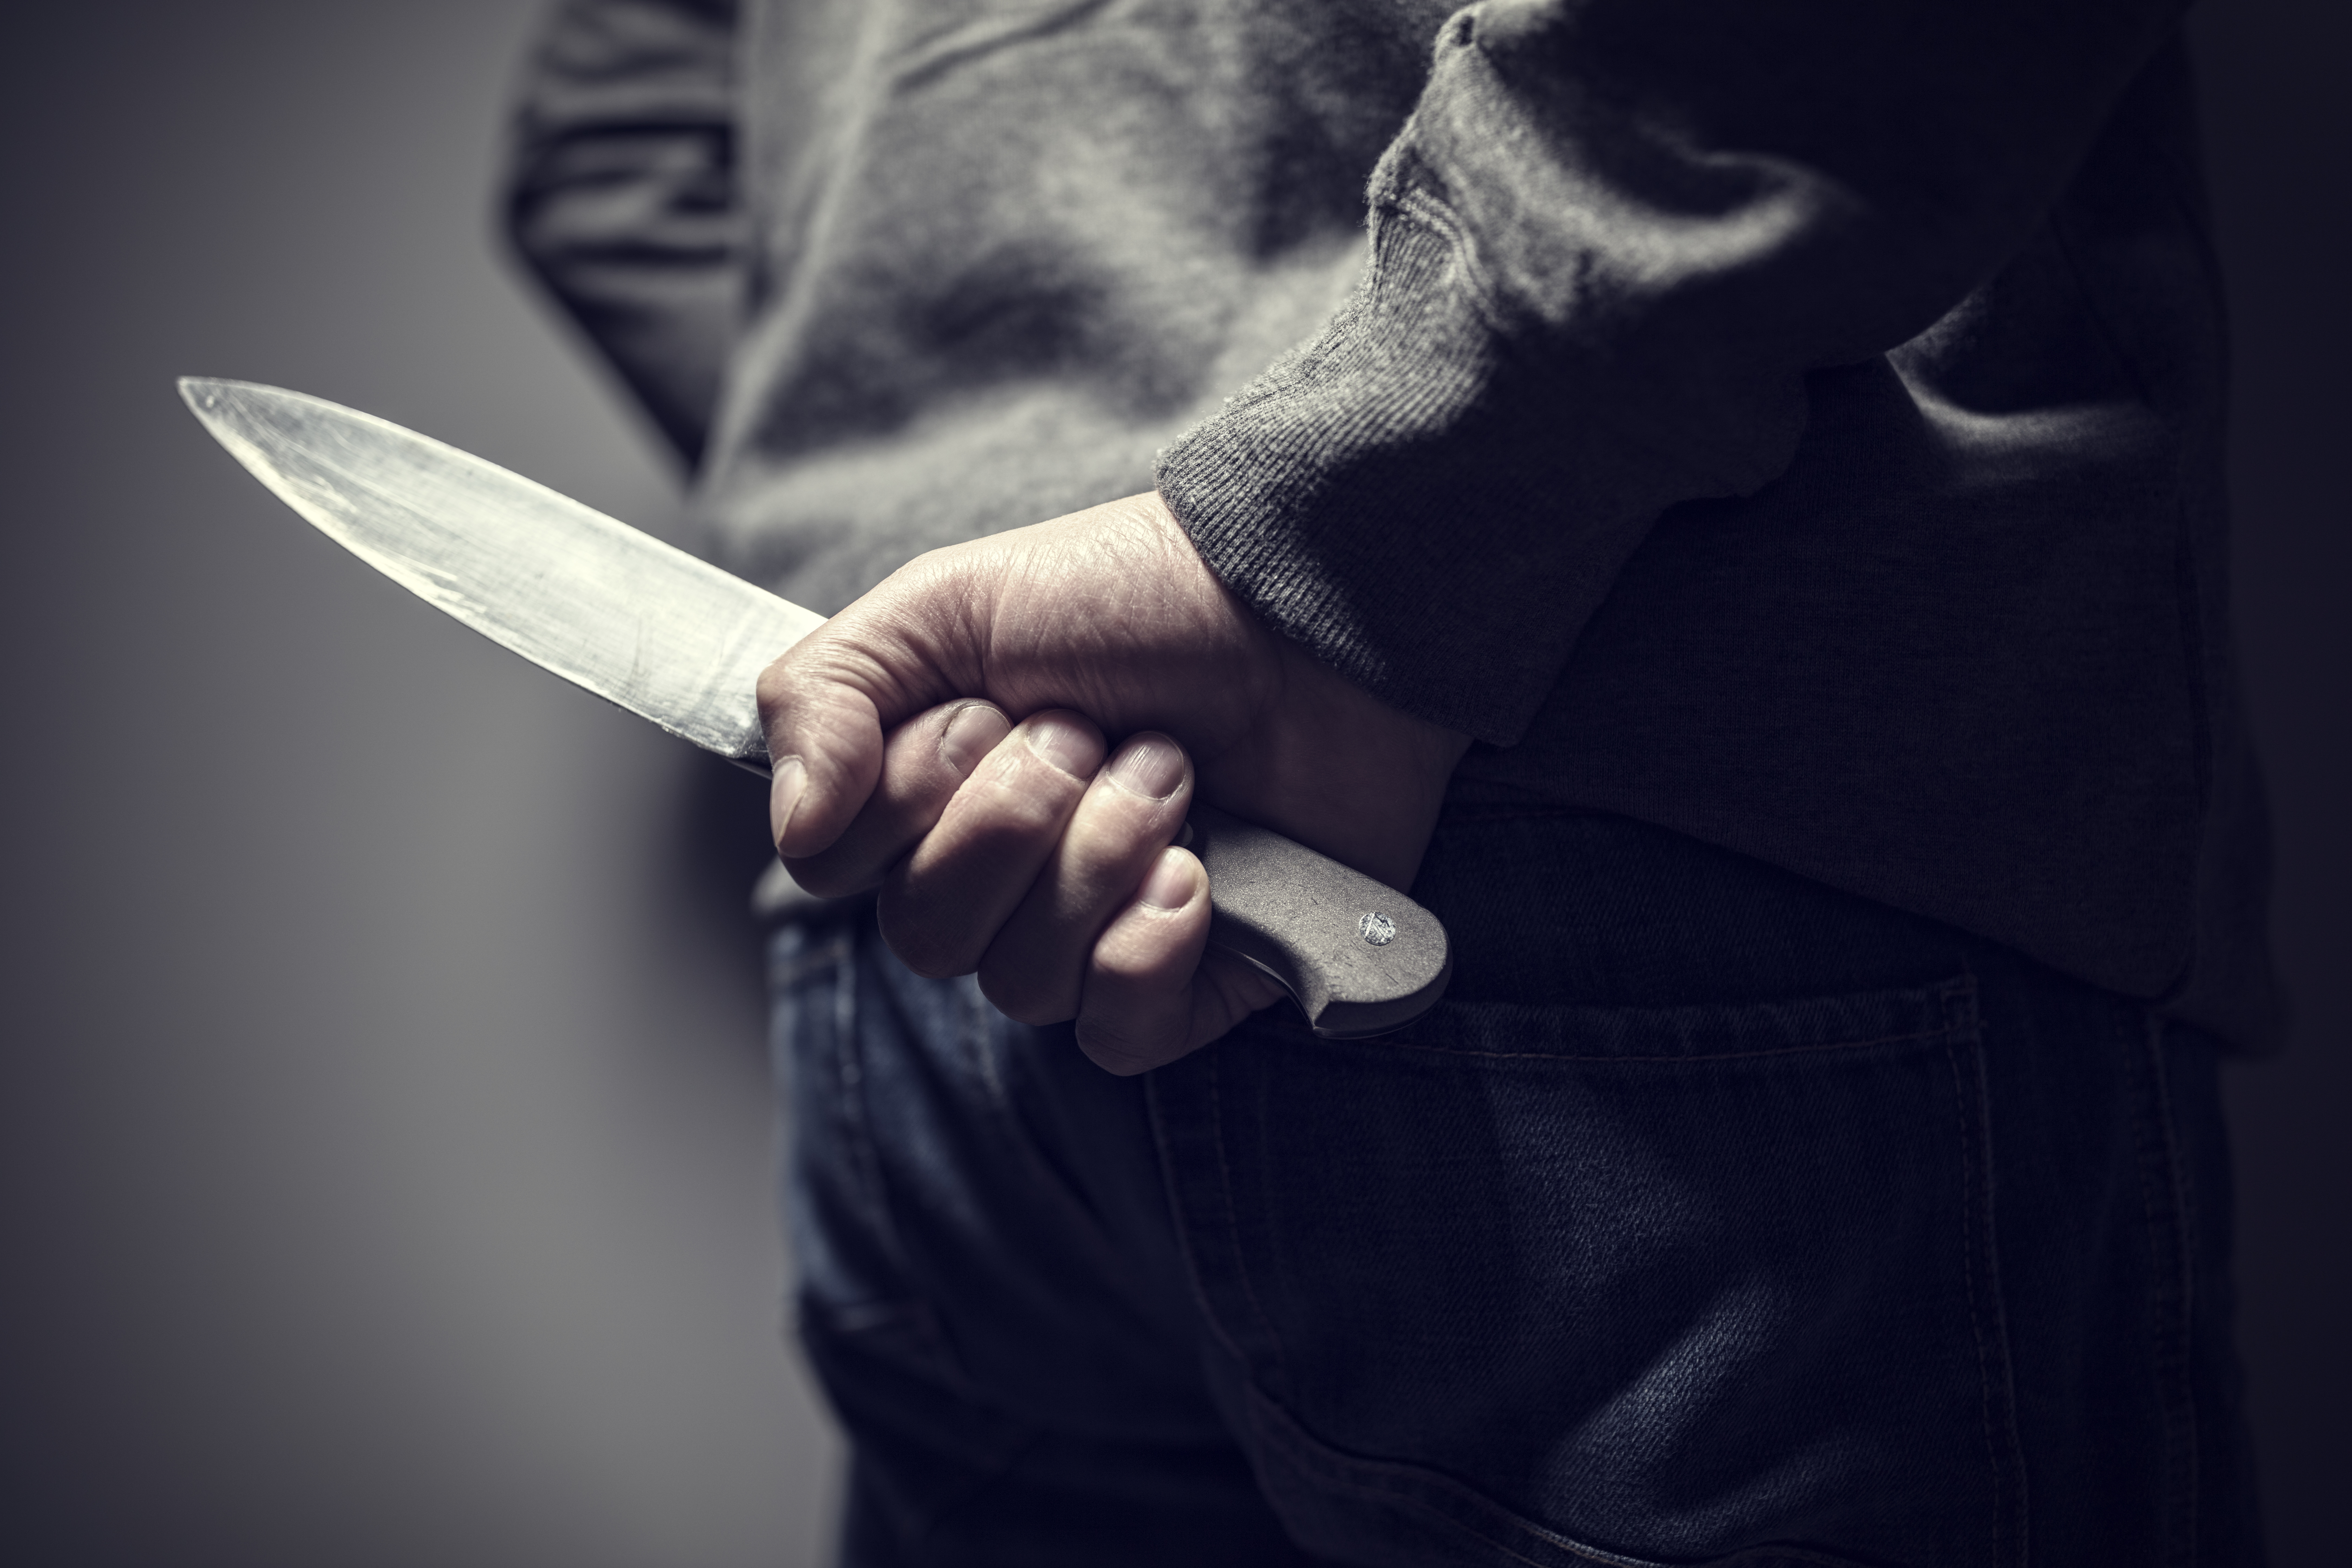 Knife crime CICA Claims